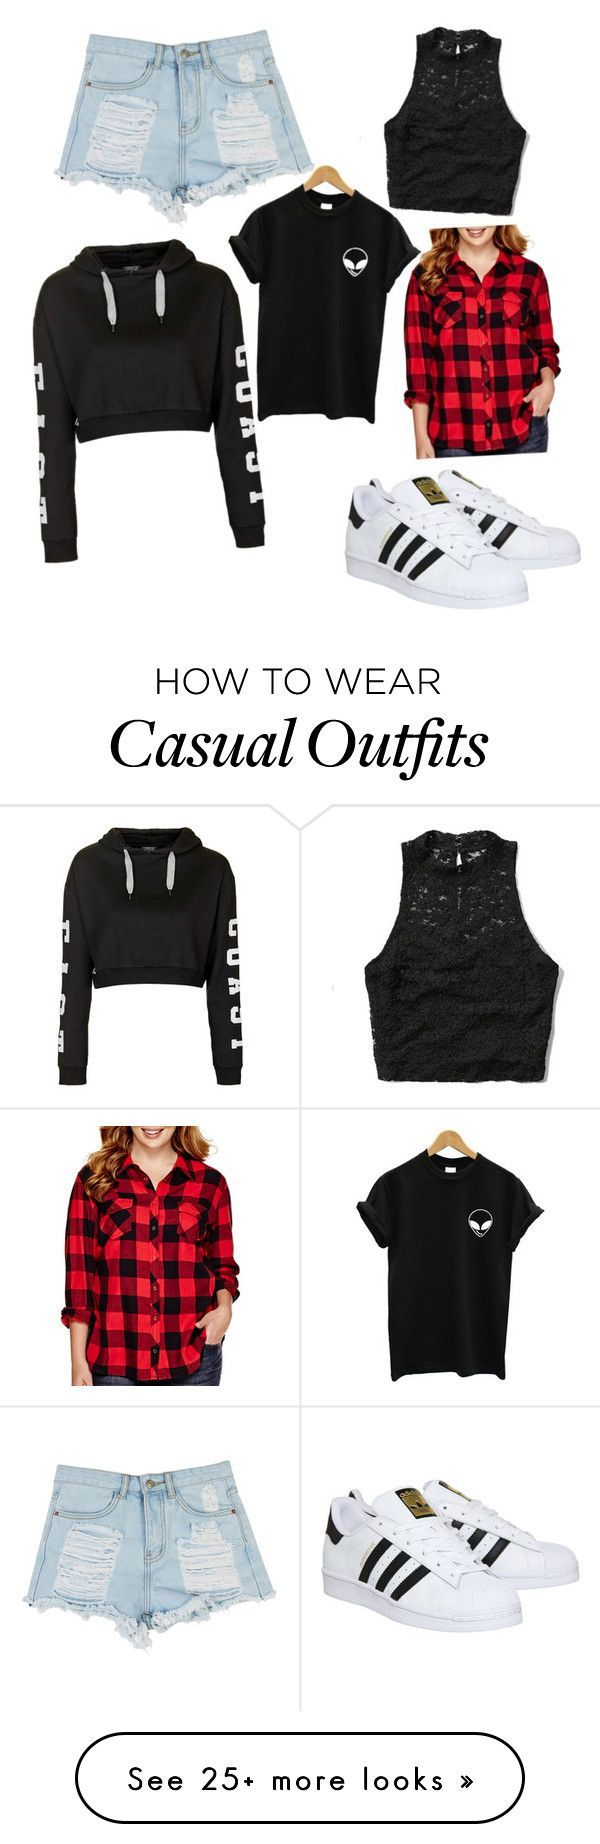 Casual by emilyjohnson27 on Polyvore featuring Abercrombie Fitch, adidas, Topshop, Arizona, womens clothing, women, female, woman, misses and juniors